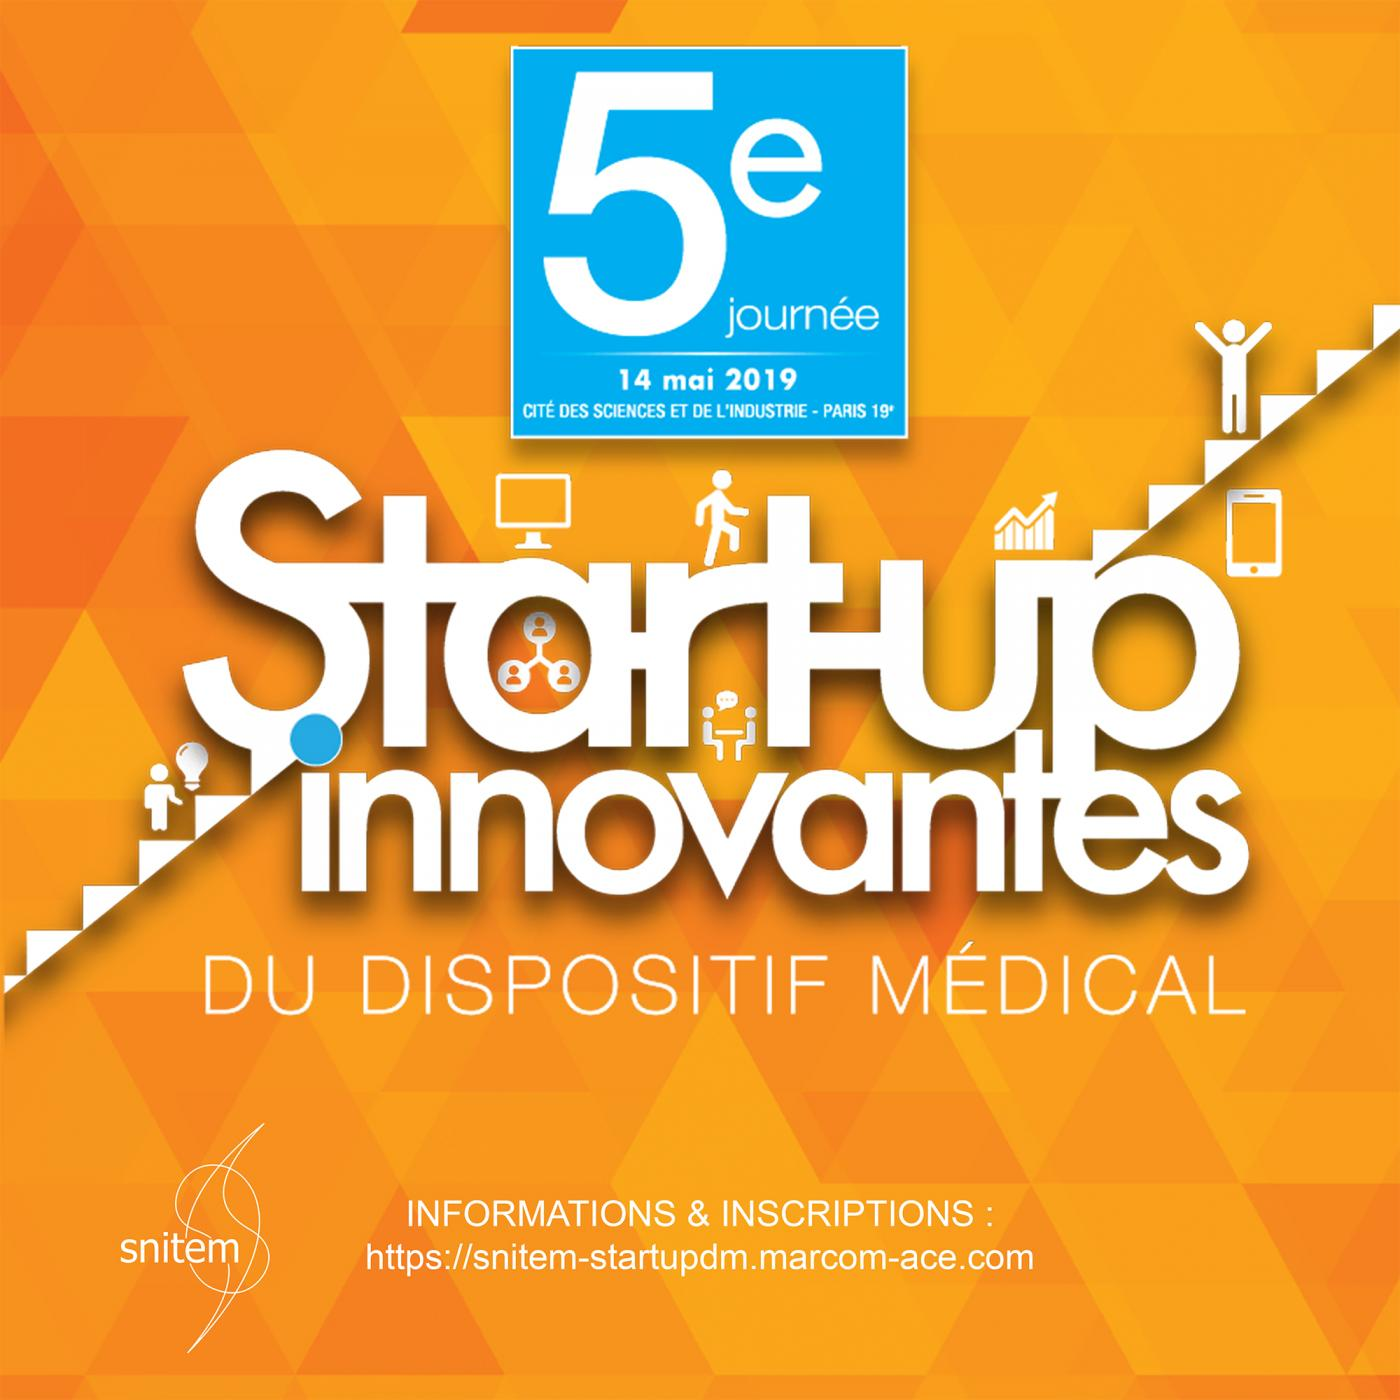 5ème journée start-up innovantes du dispositif médical